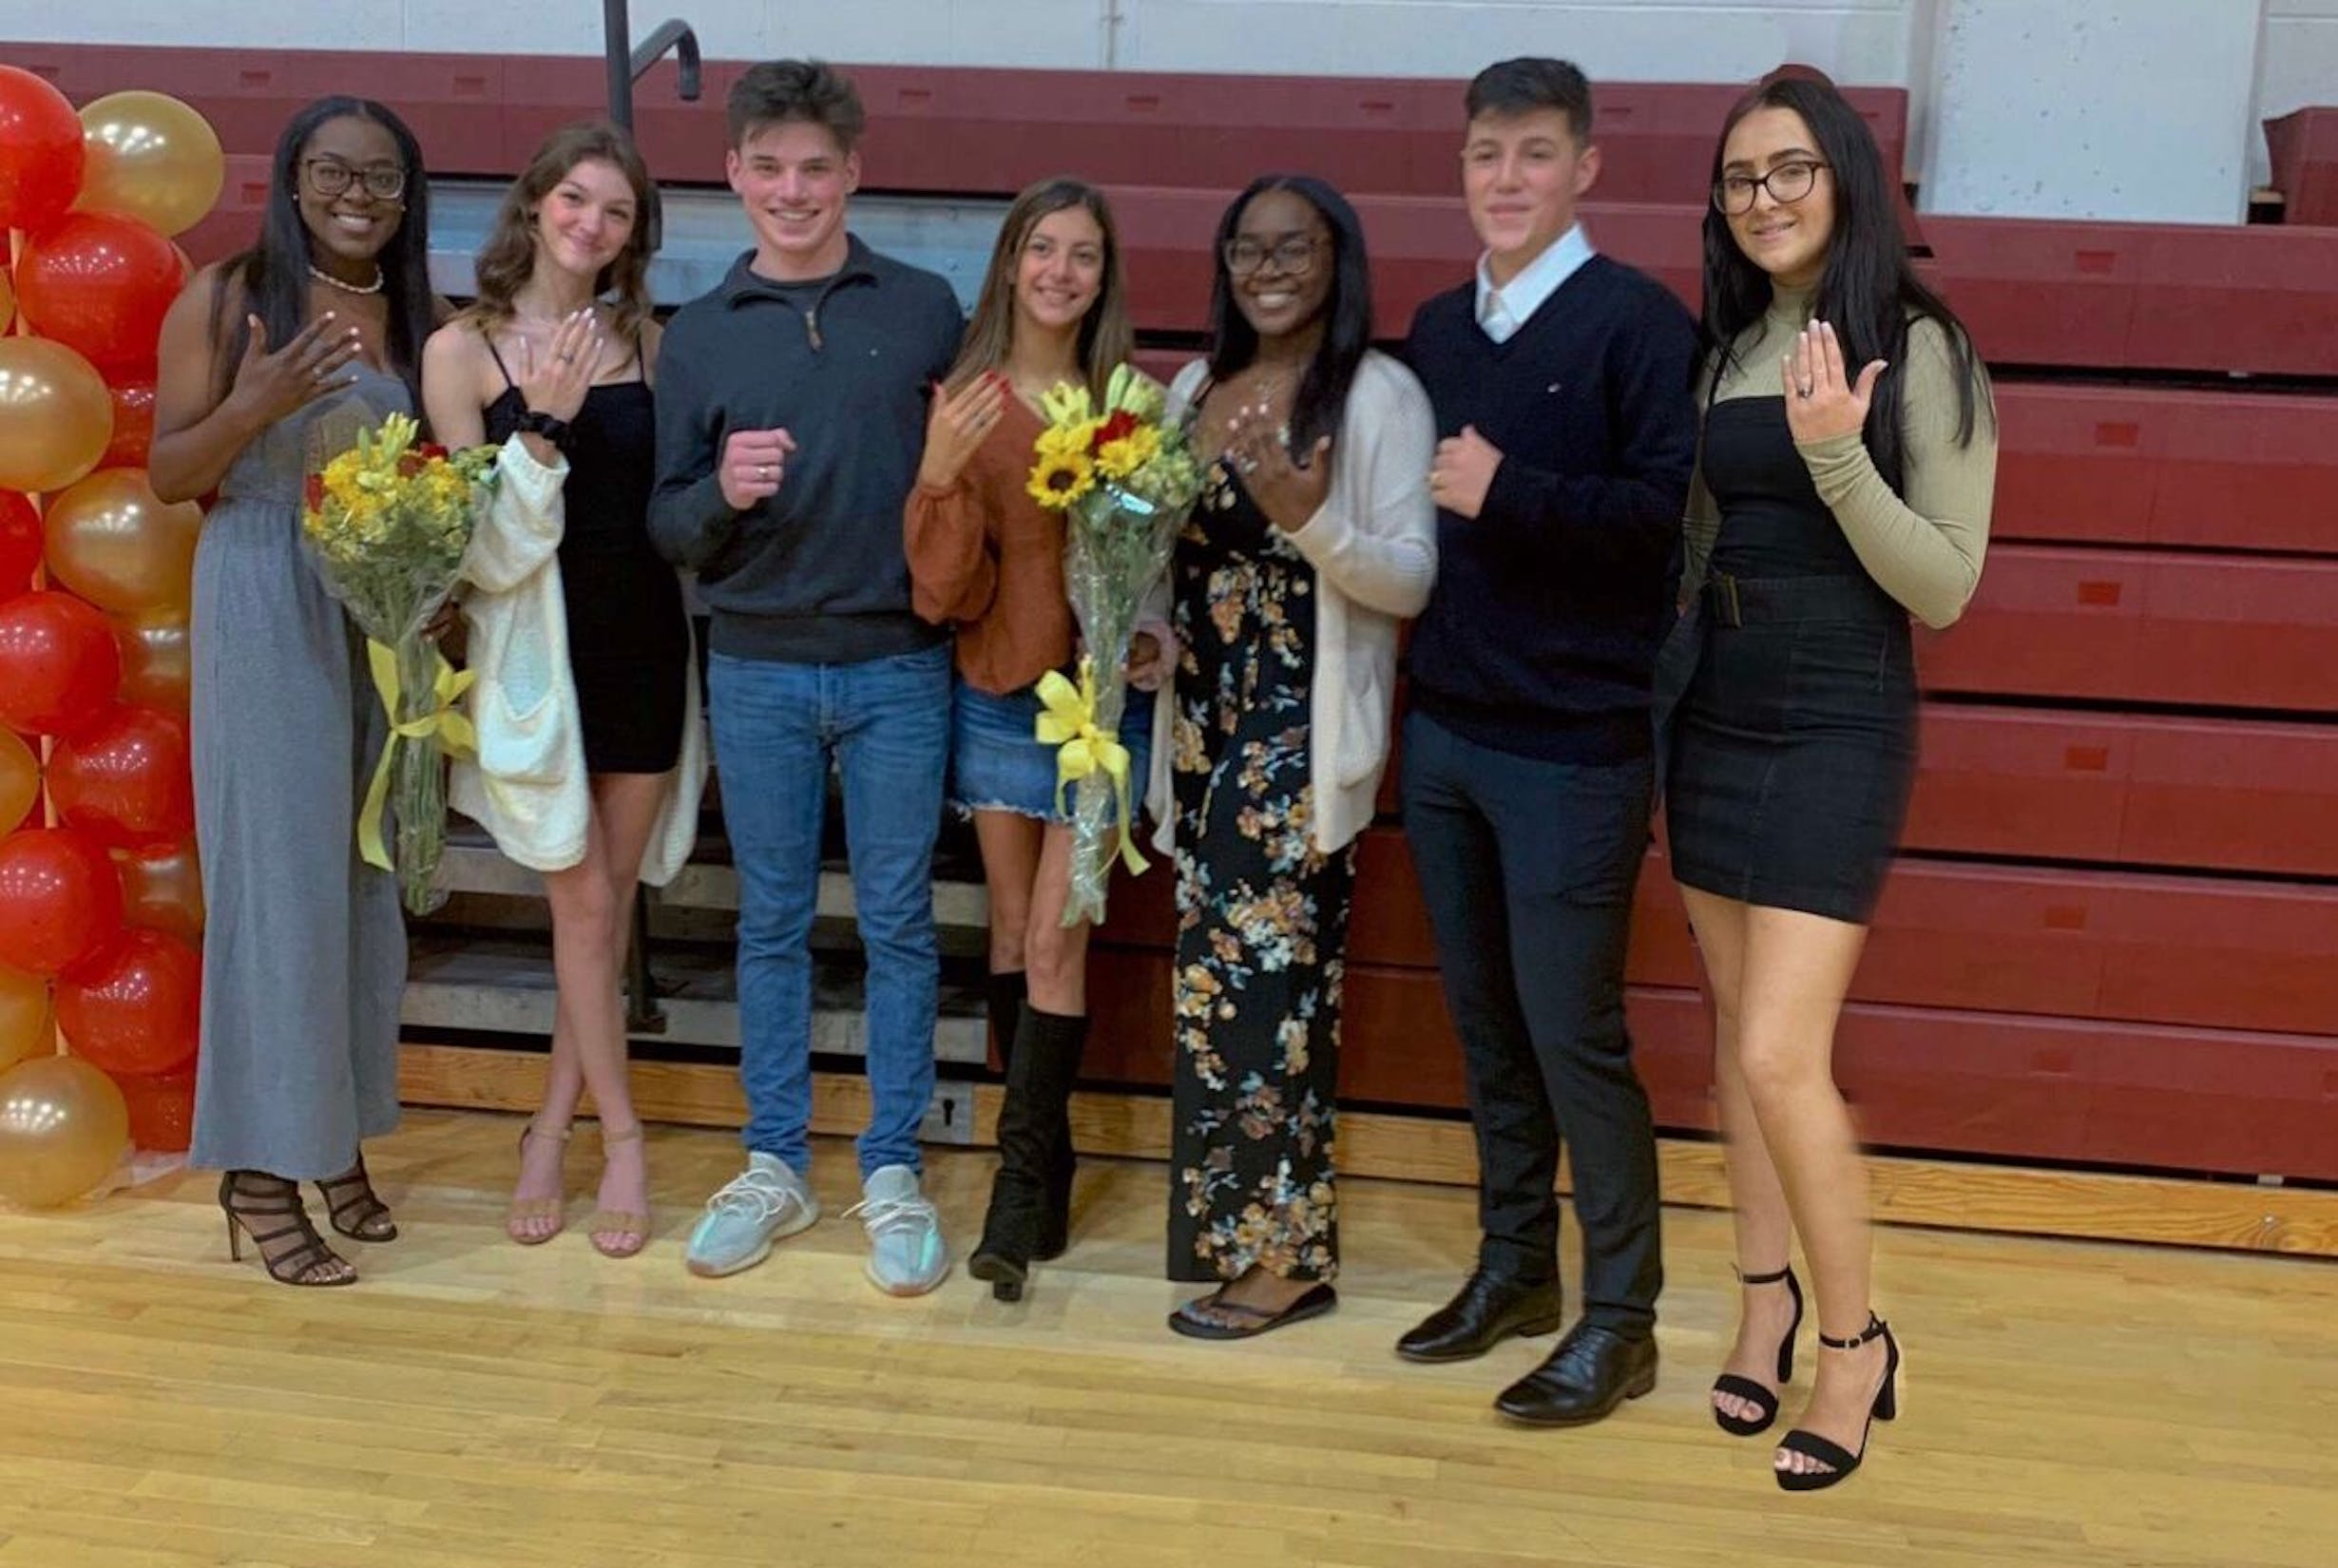 A group of male and female students pose with their new class rings in the school gym